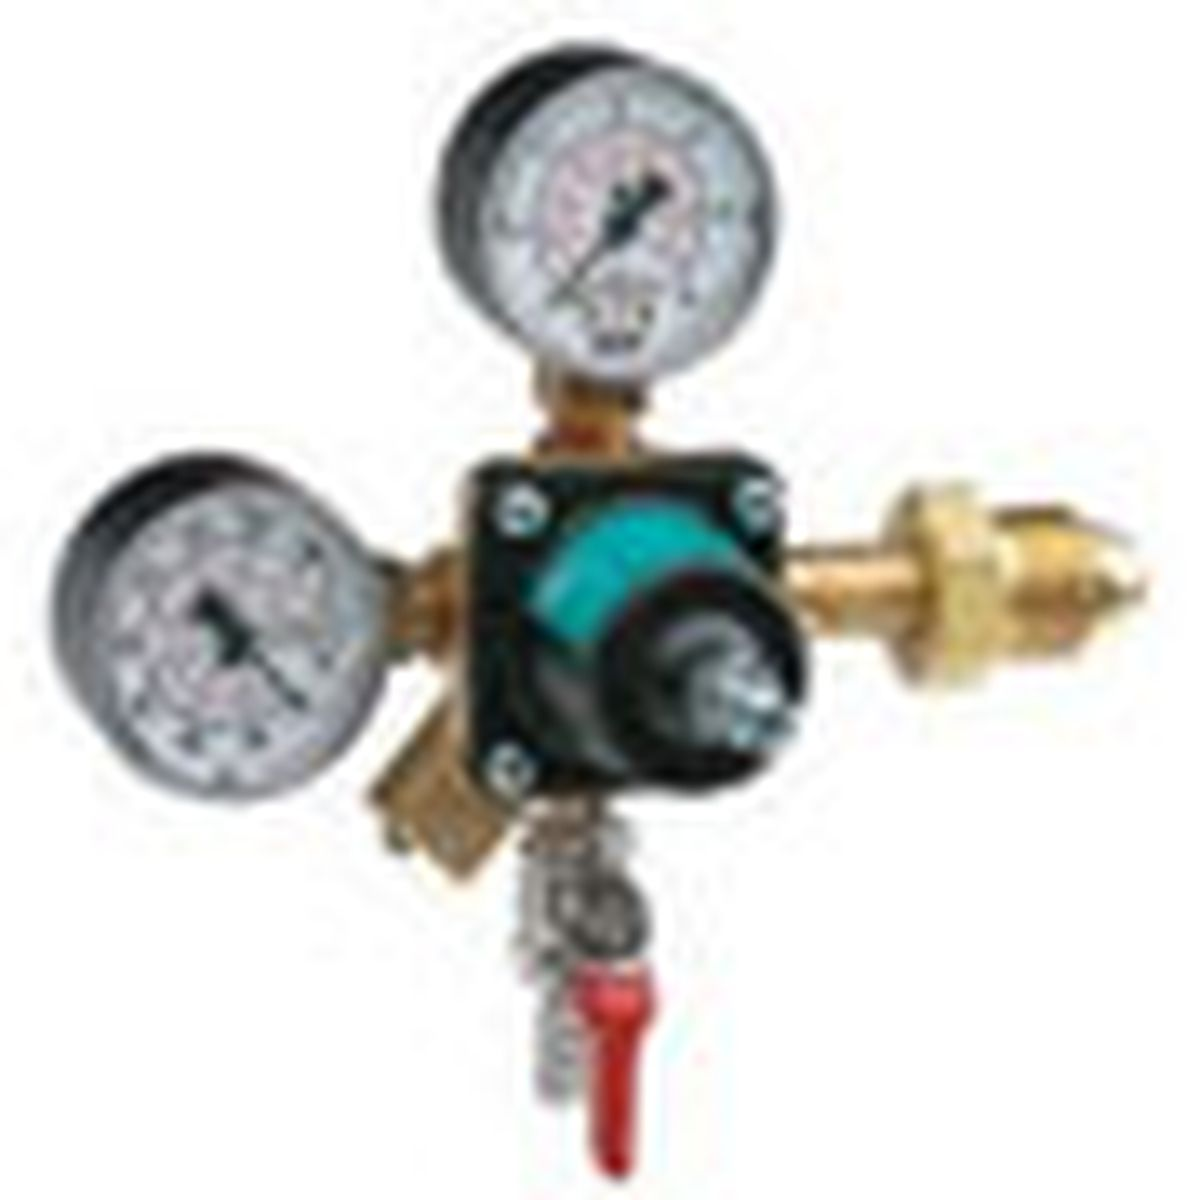 How To Install A Water Pressure Reducing Valve This Old House